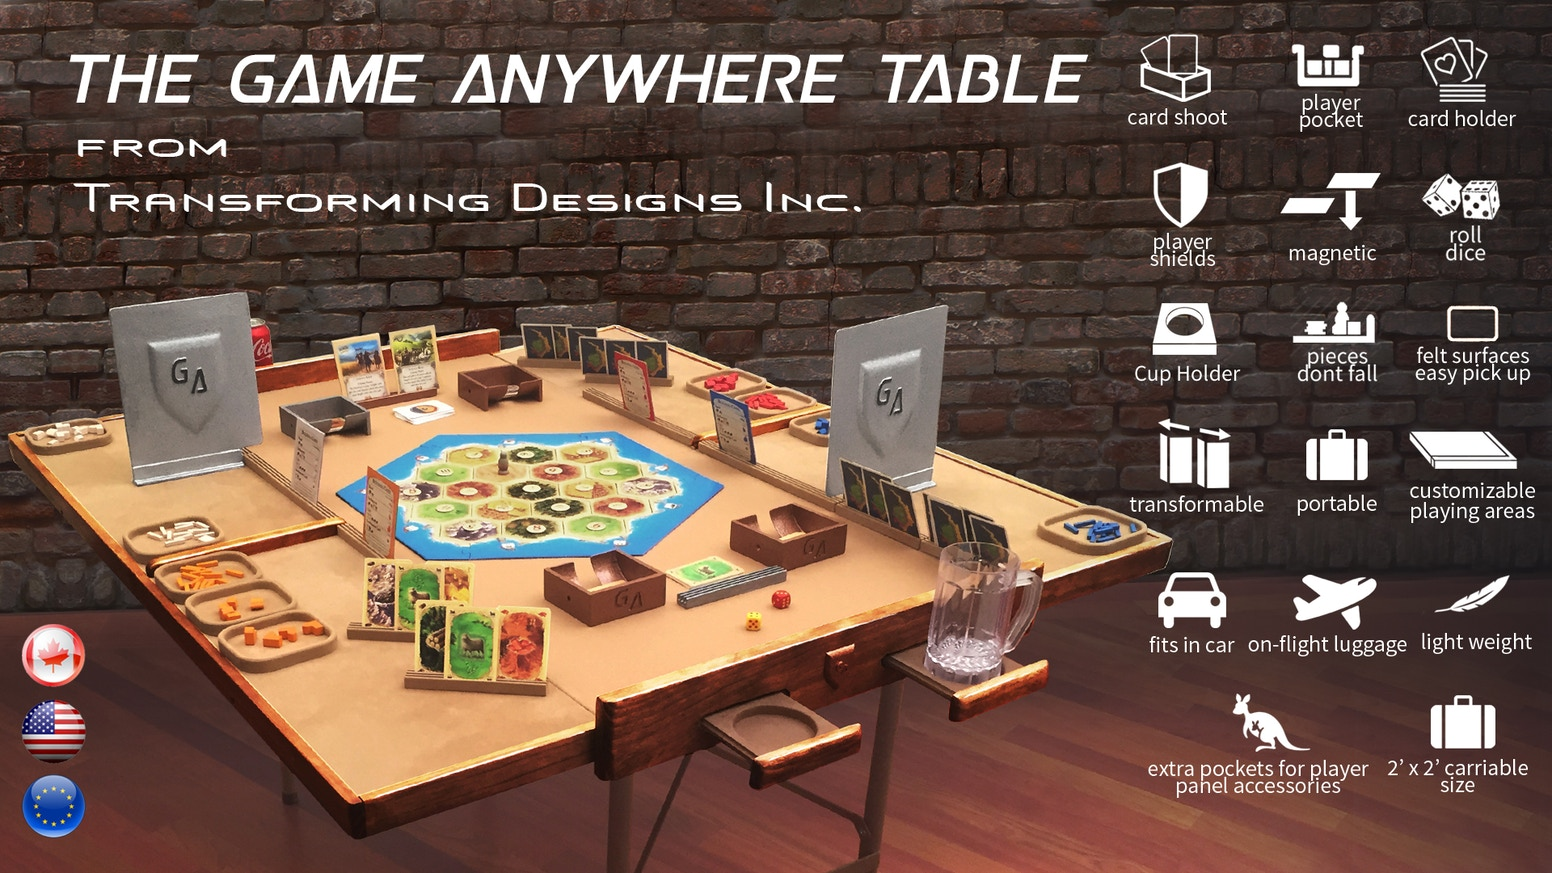 The Game Anywhere Table By Transforming Designs Inc